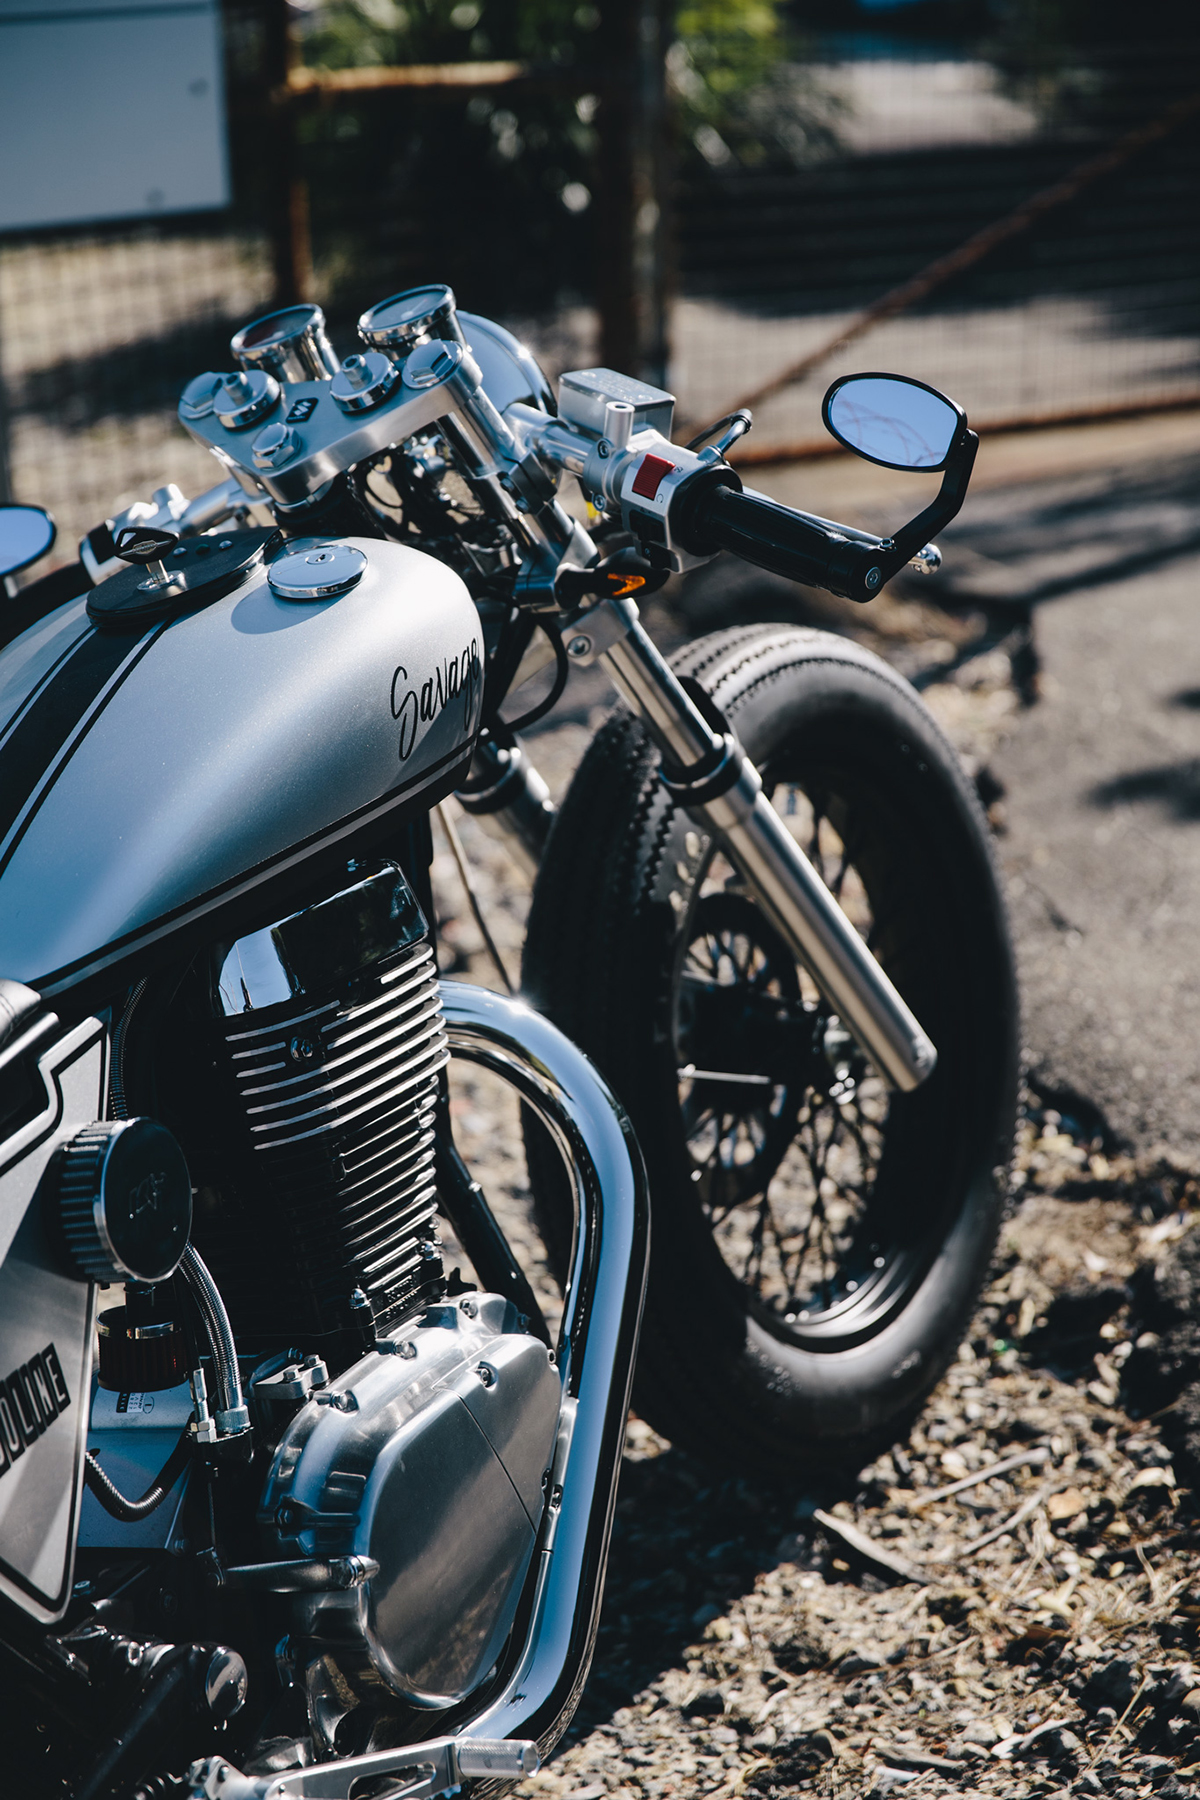 Suzuki_Savage_Cafe_Racer_Brat_8269